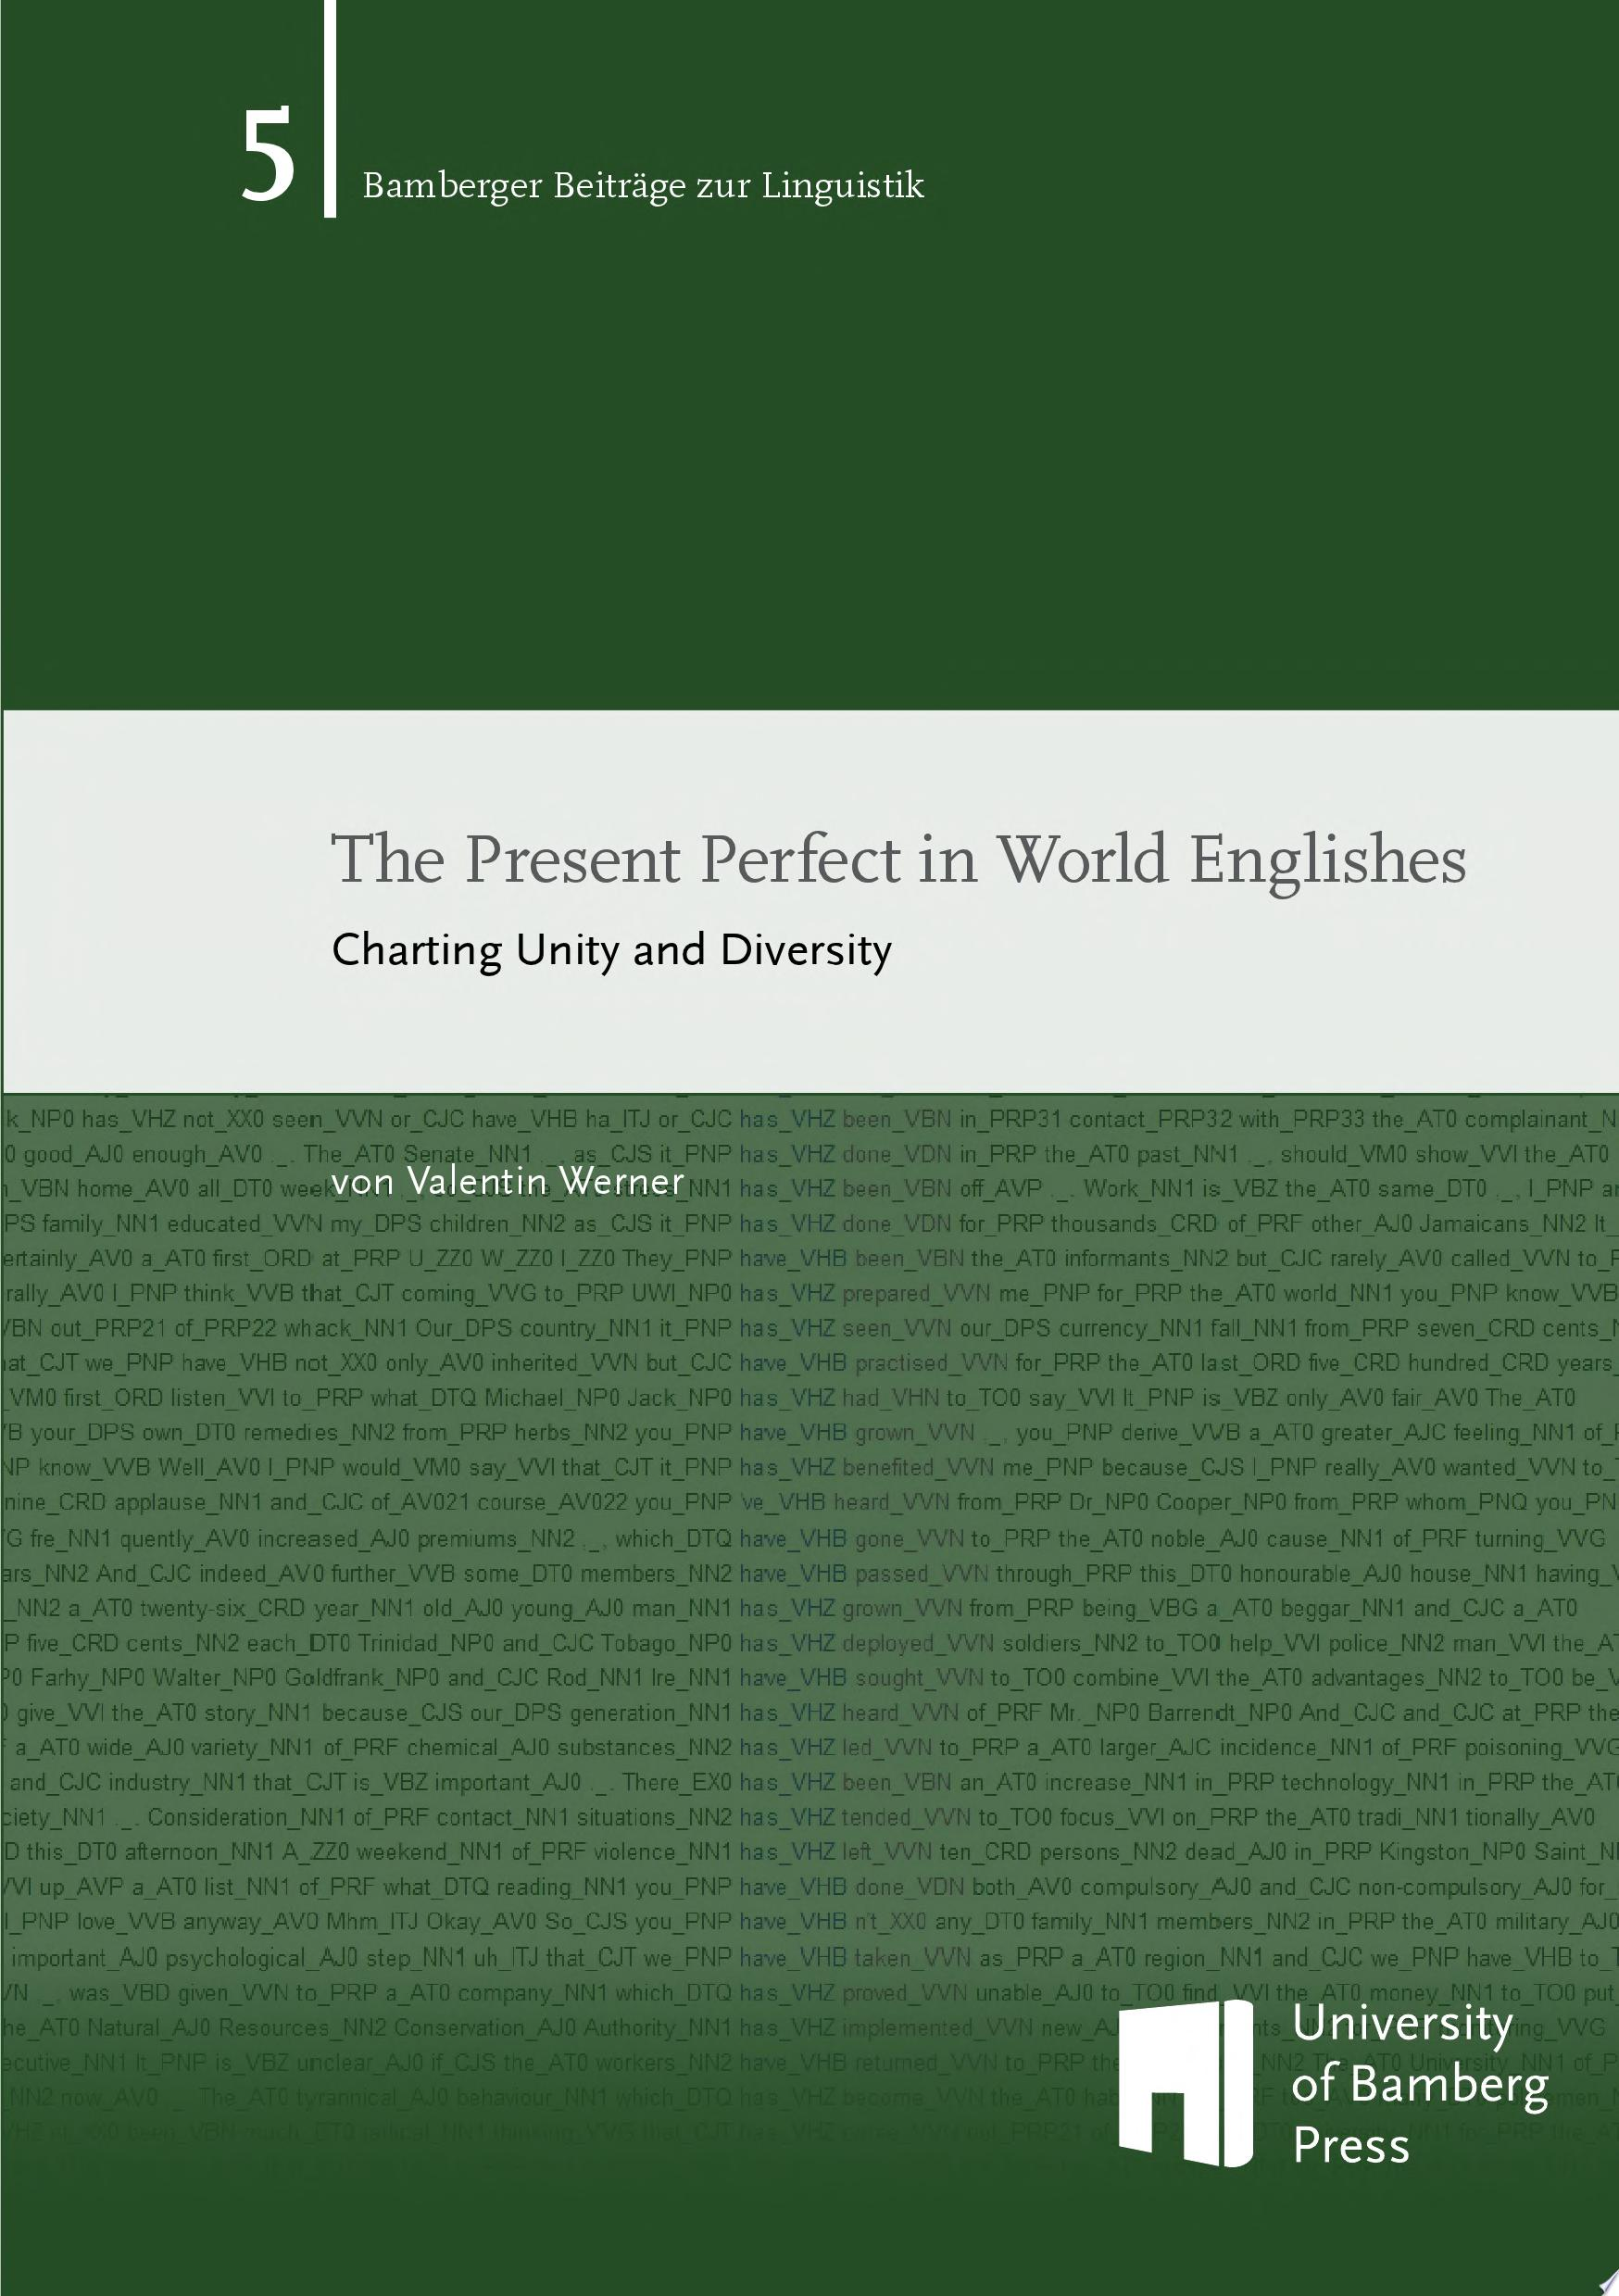 The Present Perfect in World Englishes